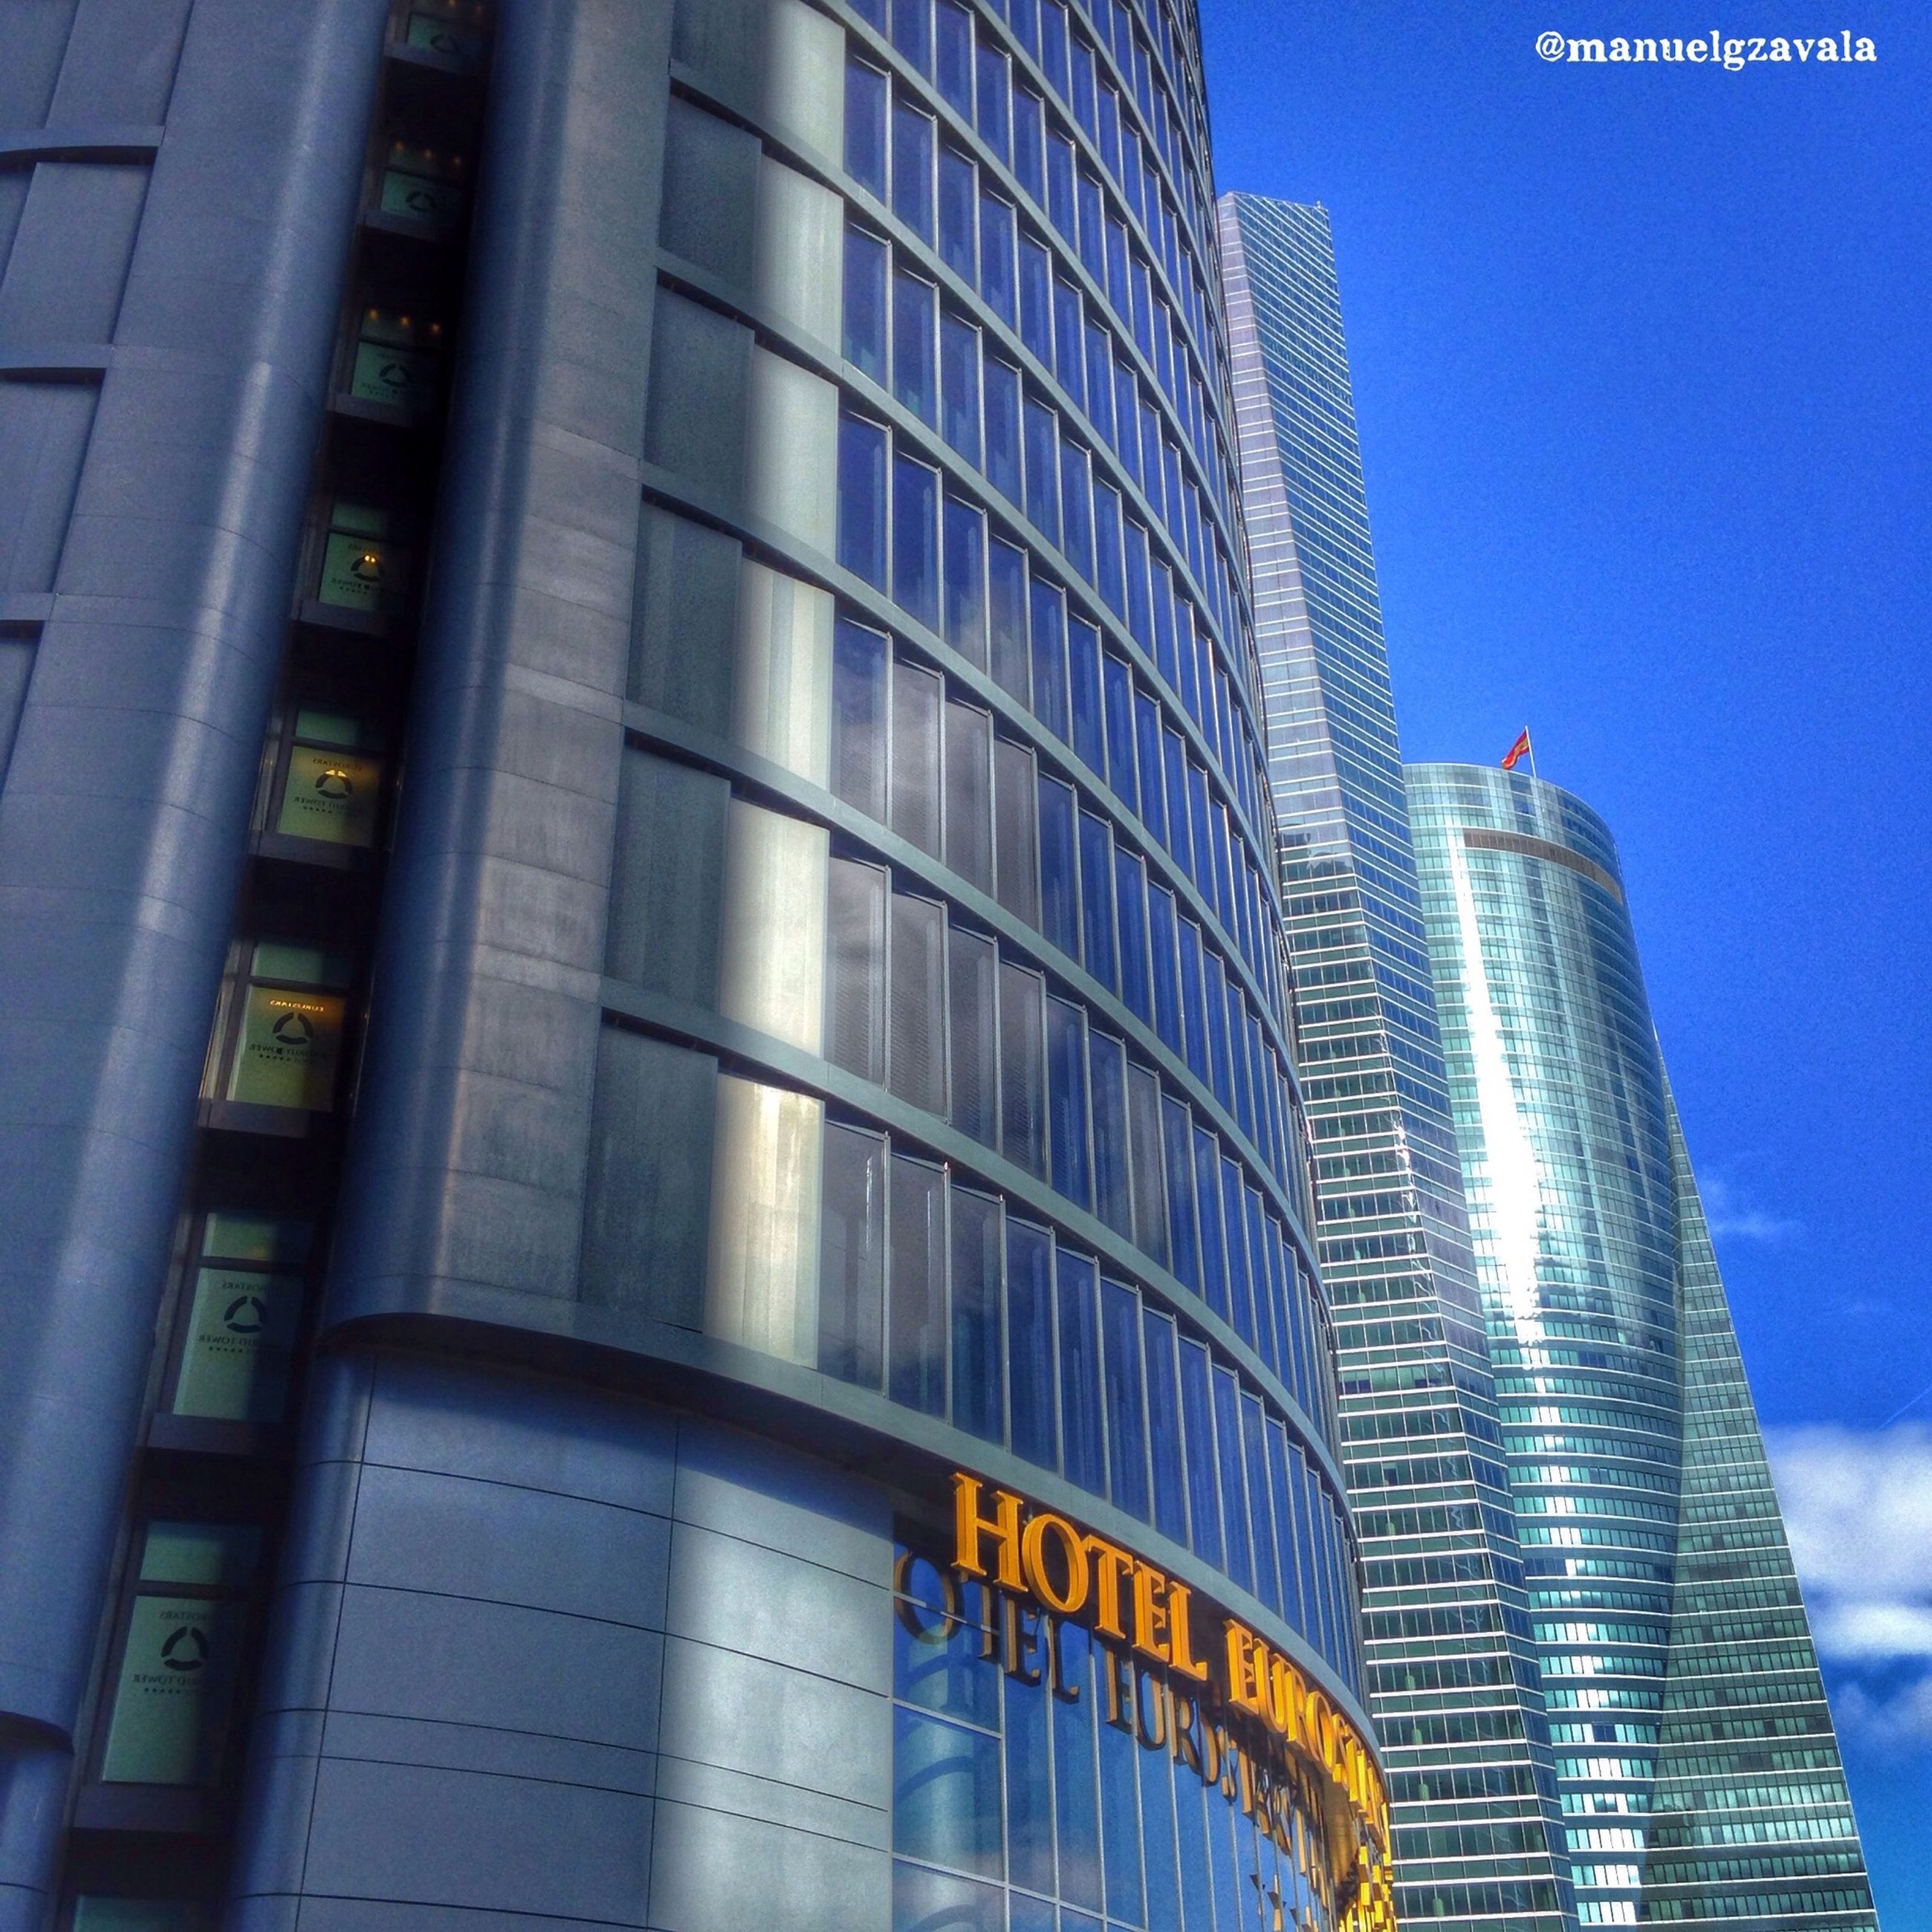 building exterior, architecture, built structure, low angle view, city, modern, office building, skyscraper, tall - high, building, tower, blue, glass - material, city life, reflection, window, sky, clear sky, outdoors, no people